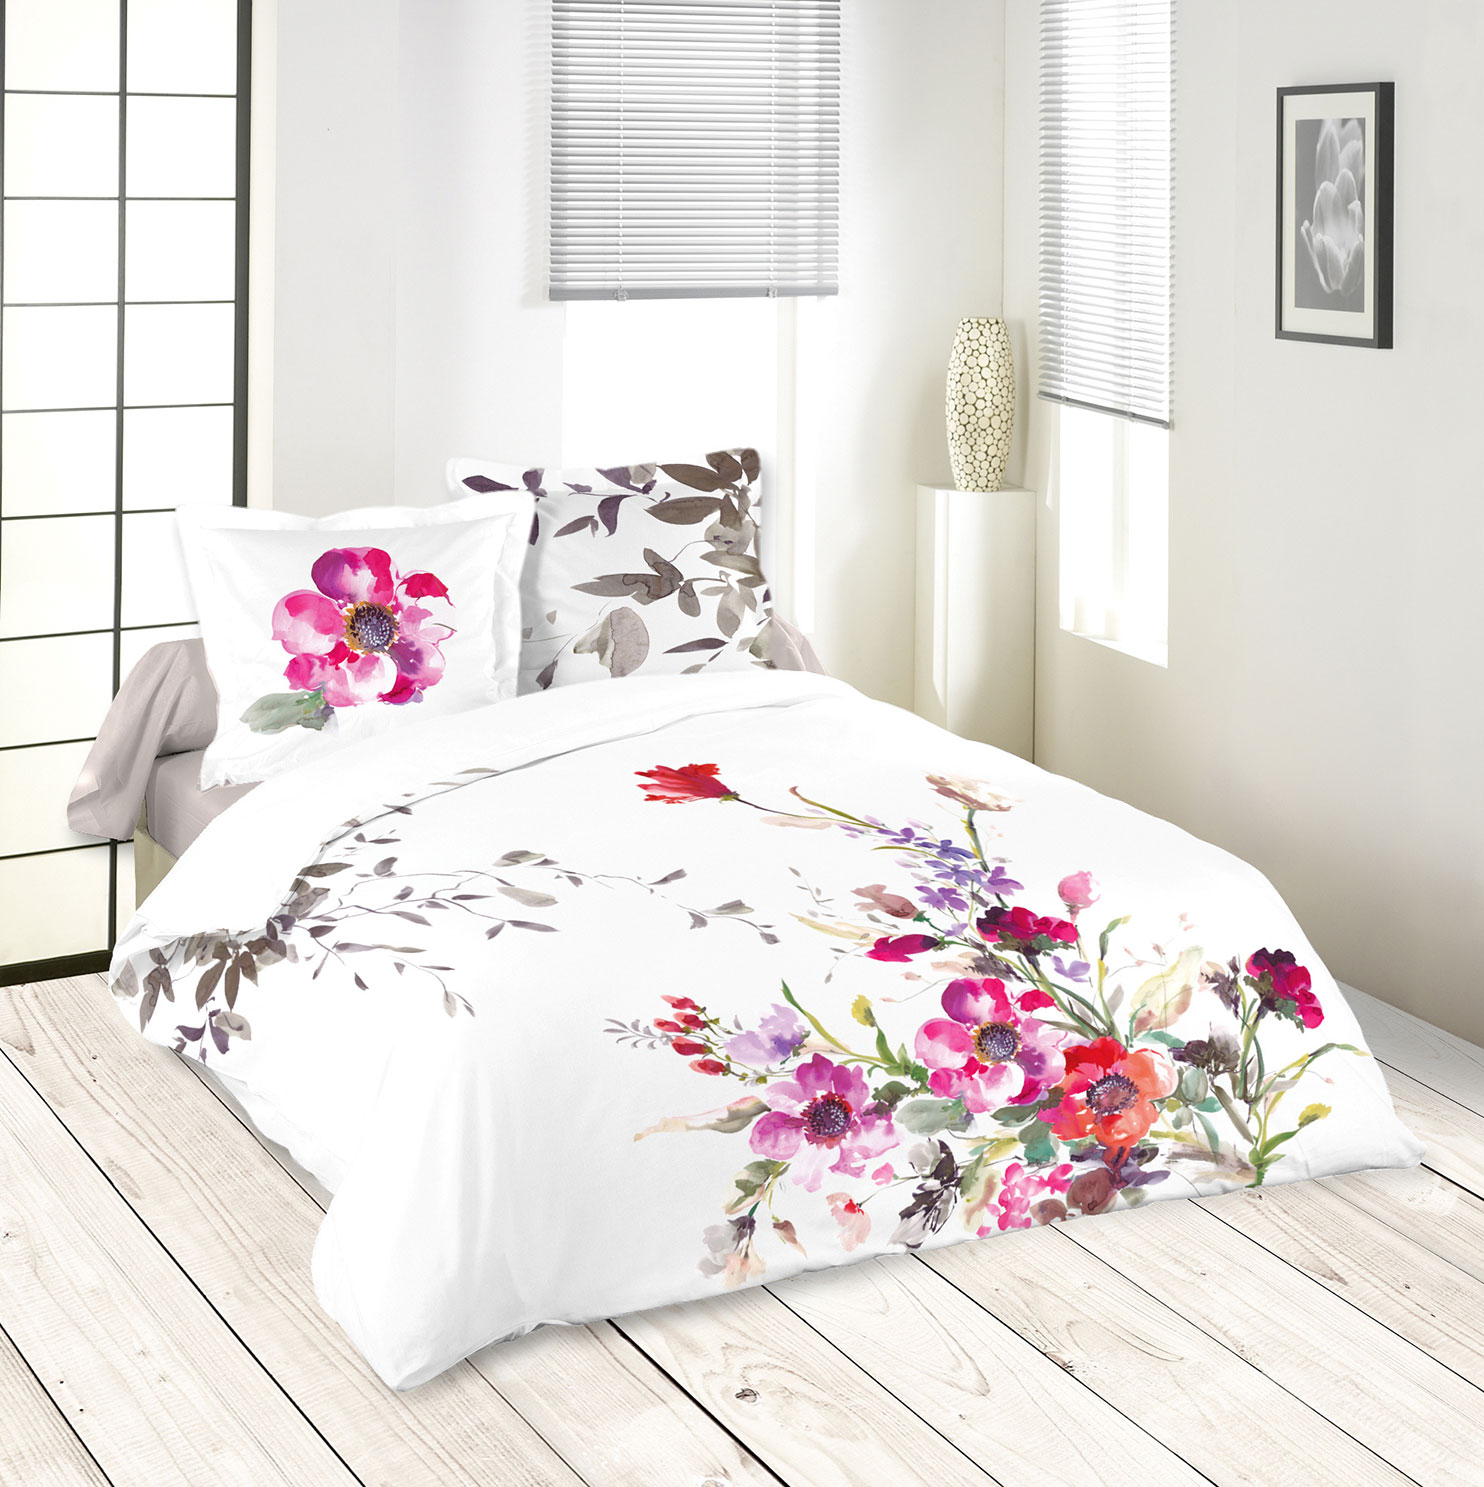 parure de couette bouquet fleuri blanc violet rose et. Black Bedroom Furniture Sets. Home Design Ideas